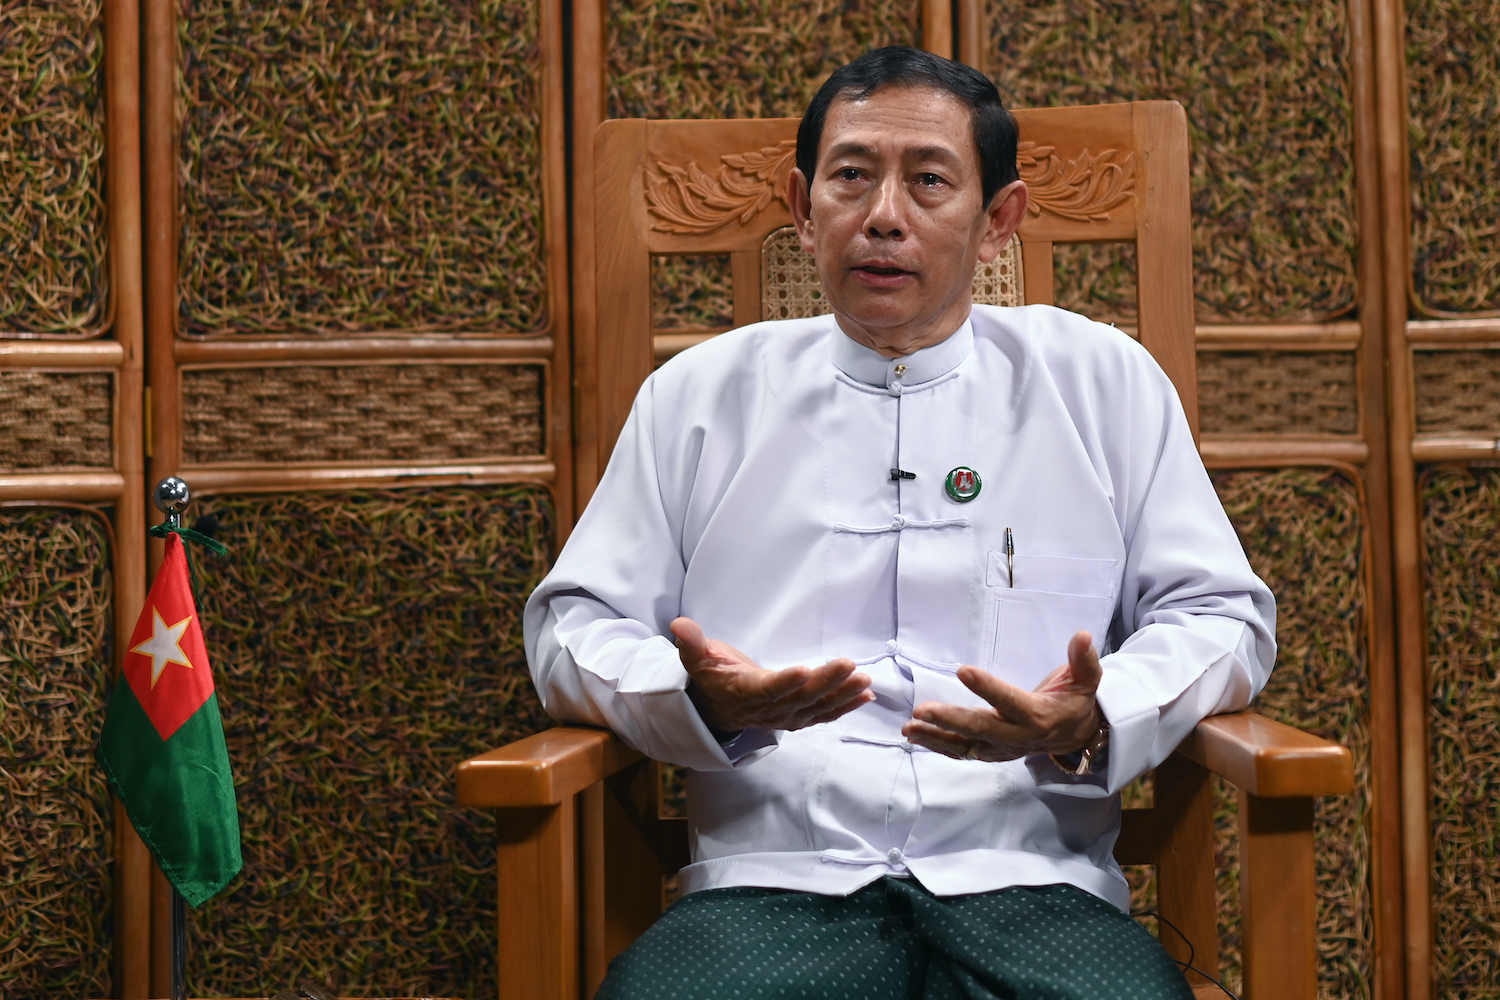 Union Solidarity and Development Party chairperson U Than Htay, seen here speaking to journalists at the party's sprawling Nay Pyi Taw headquarters on August 27, called members of the stateless and persecuted Rohingya minority